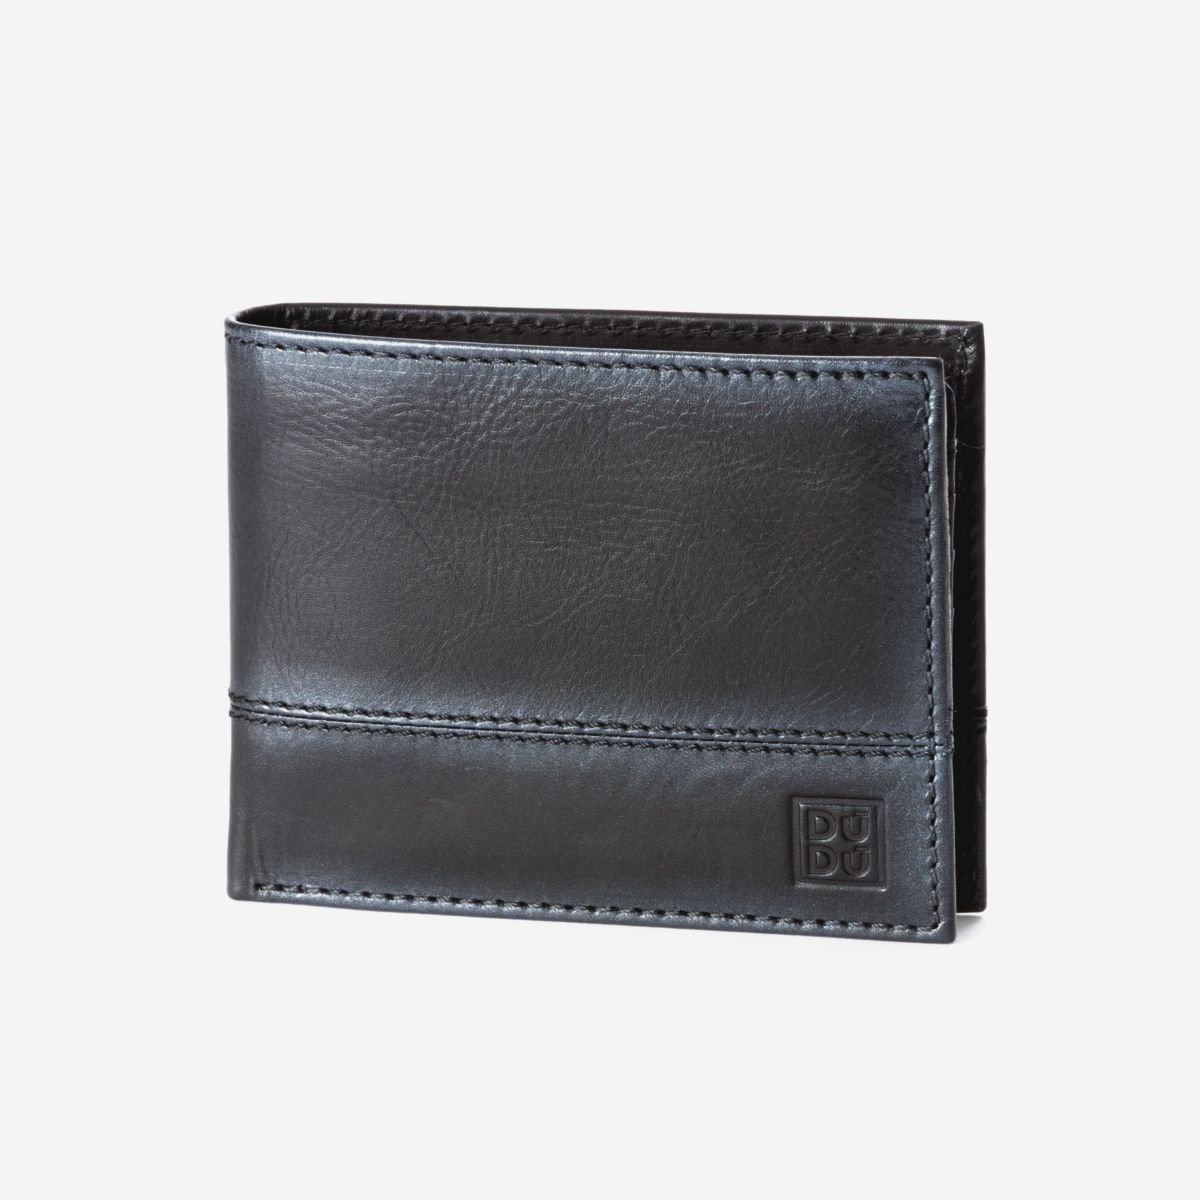 Leather Wallet With Coin Pocket For Men - Black